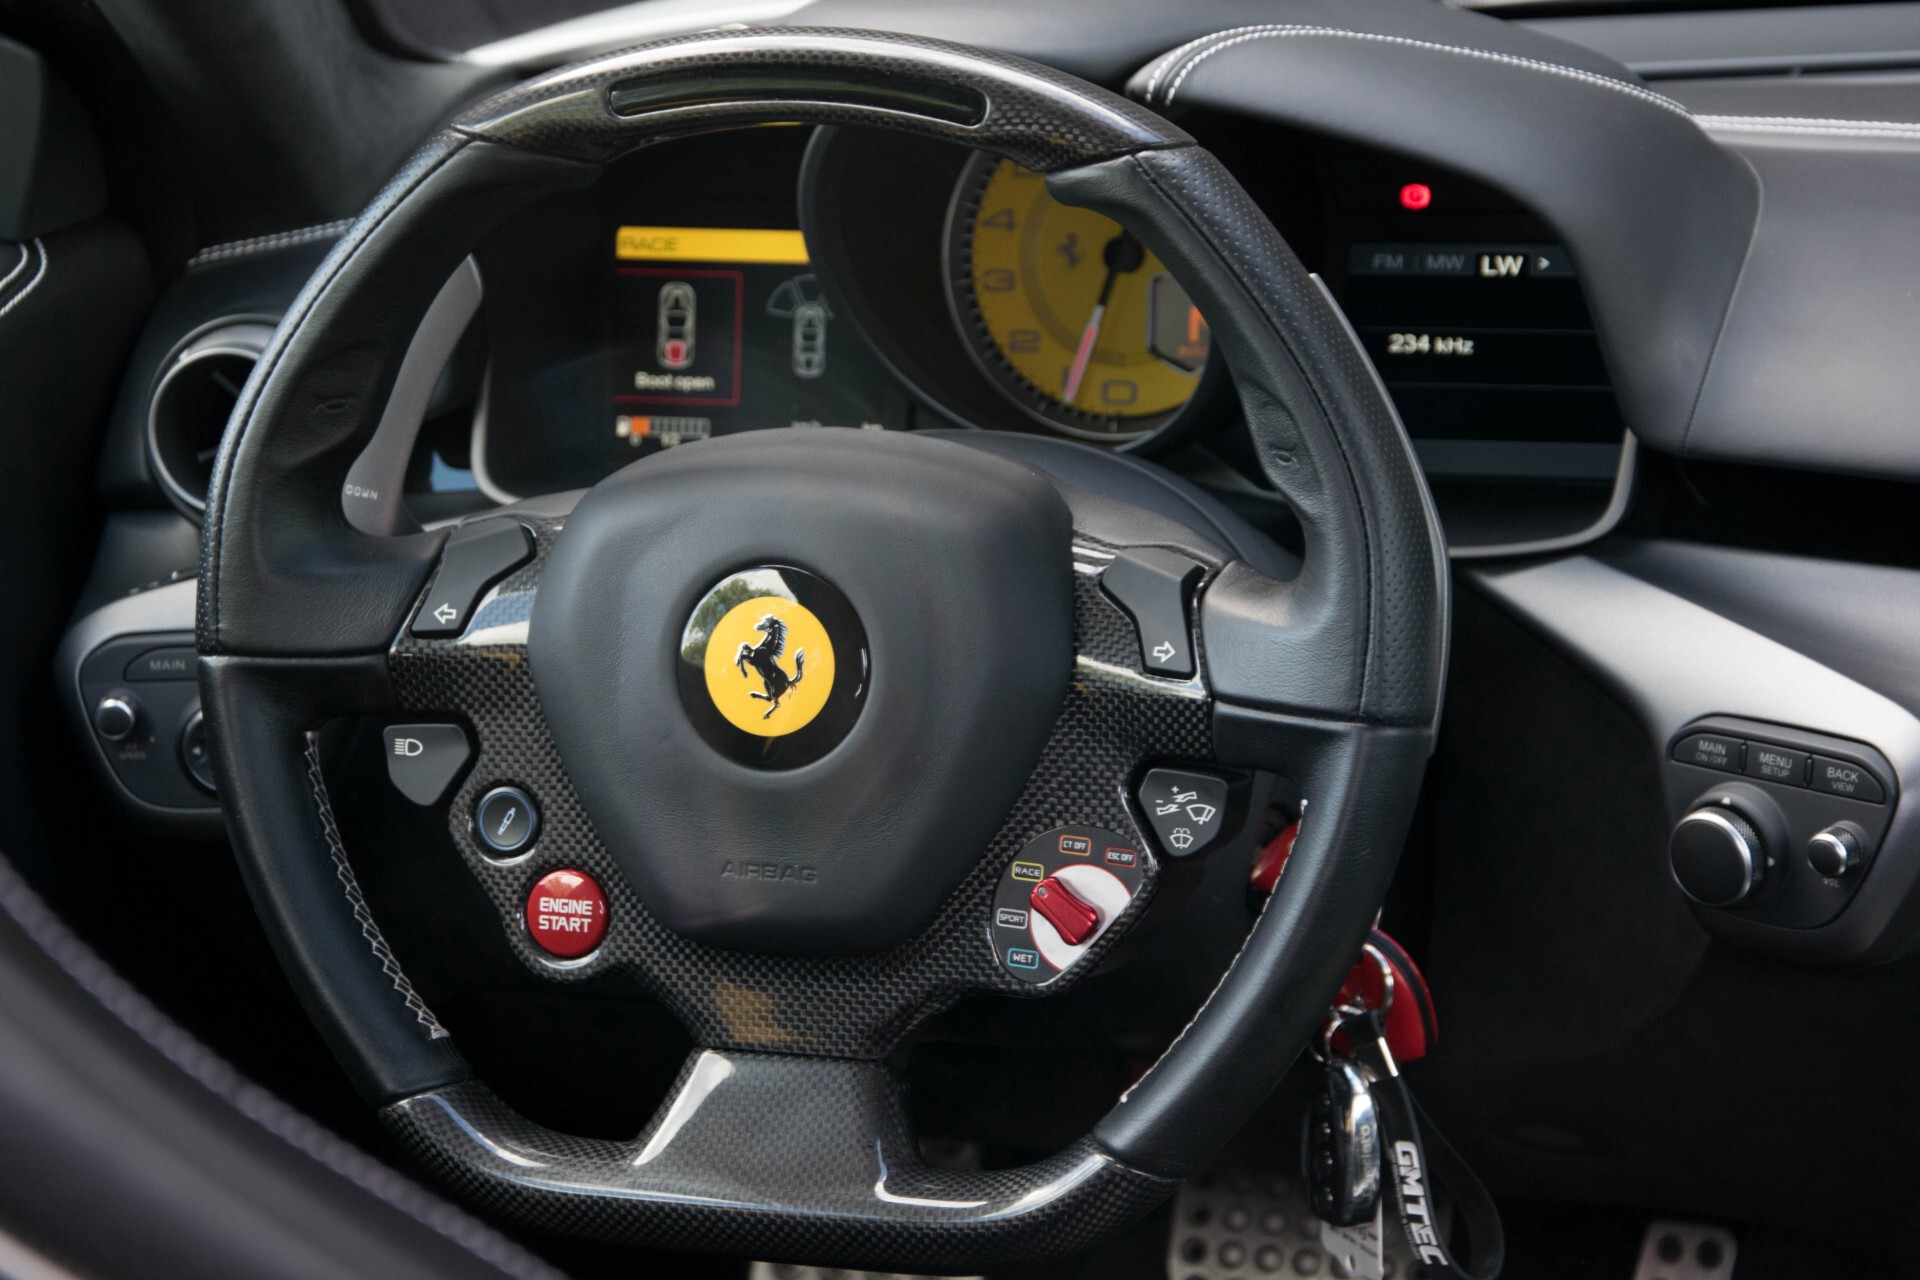 Ferrari F12 6.3 Berlinetta Capristo/Carbonseats/Led/Passenger Display Aut7 Foto 10